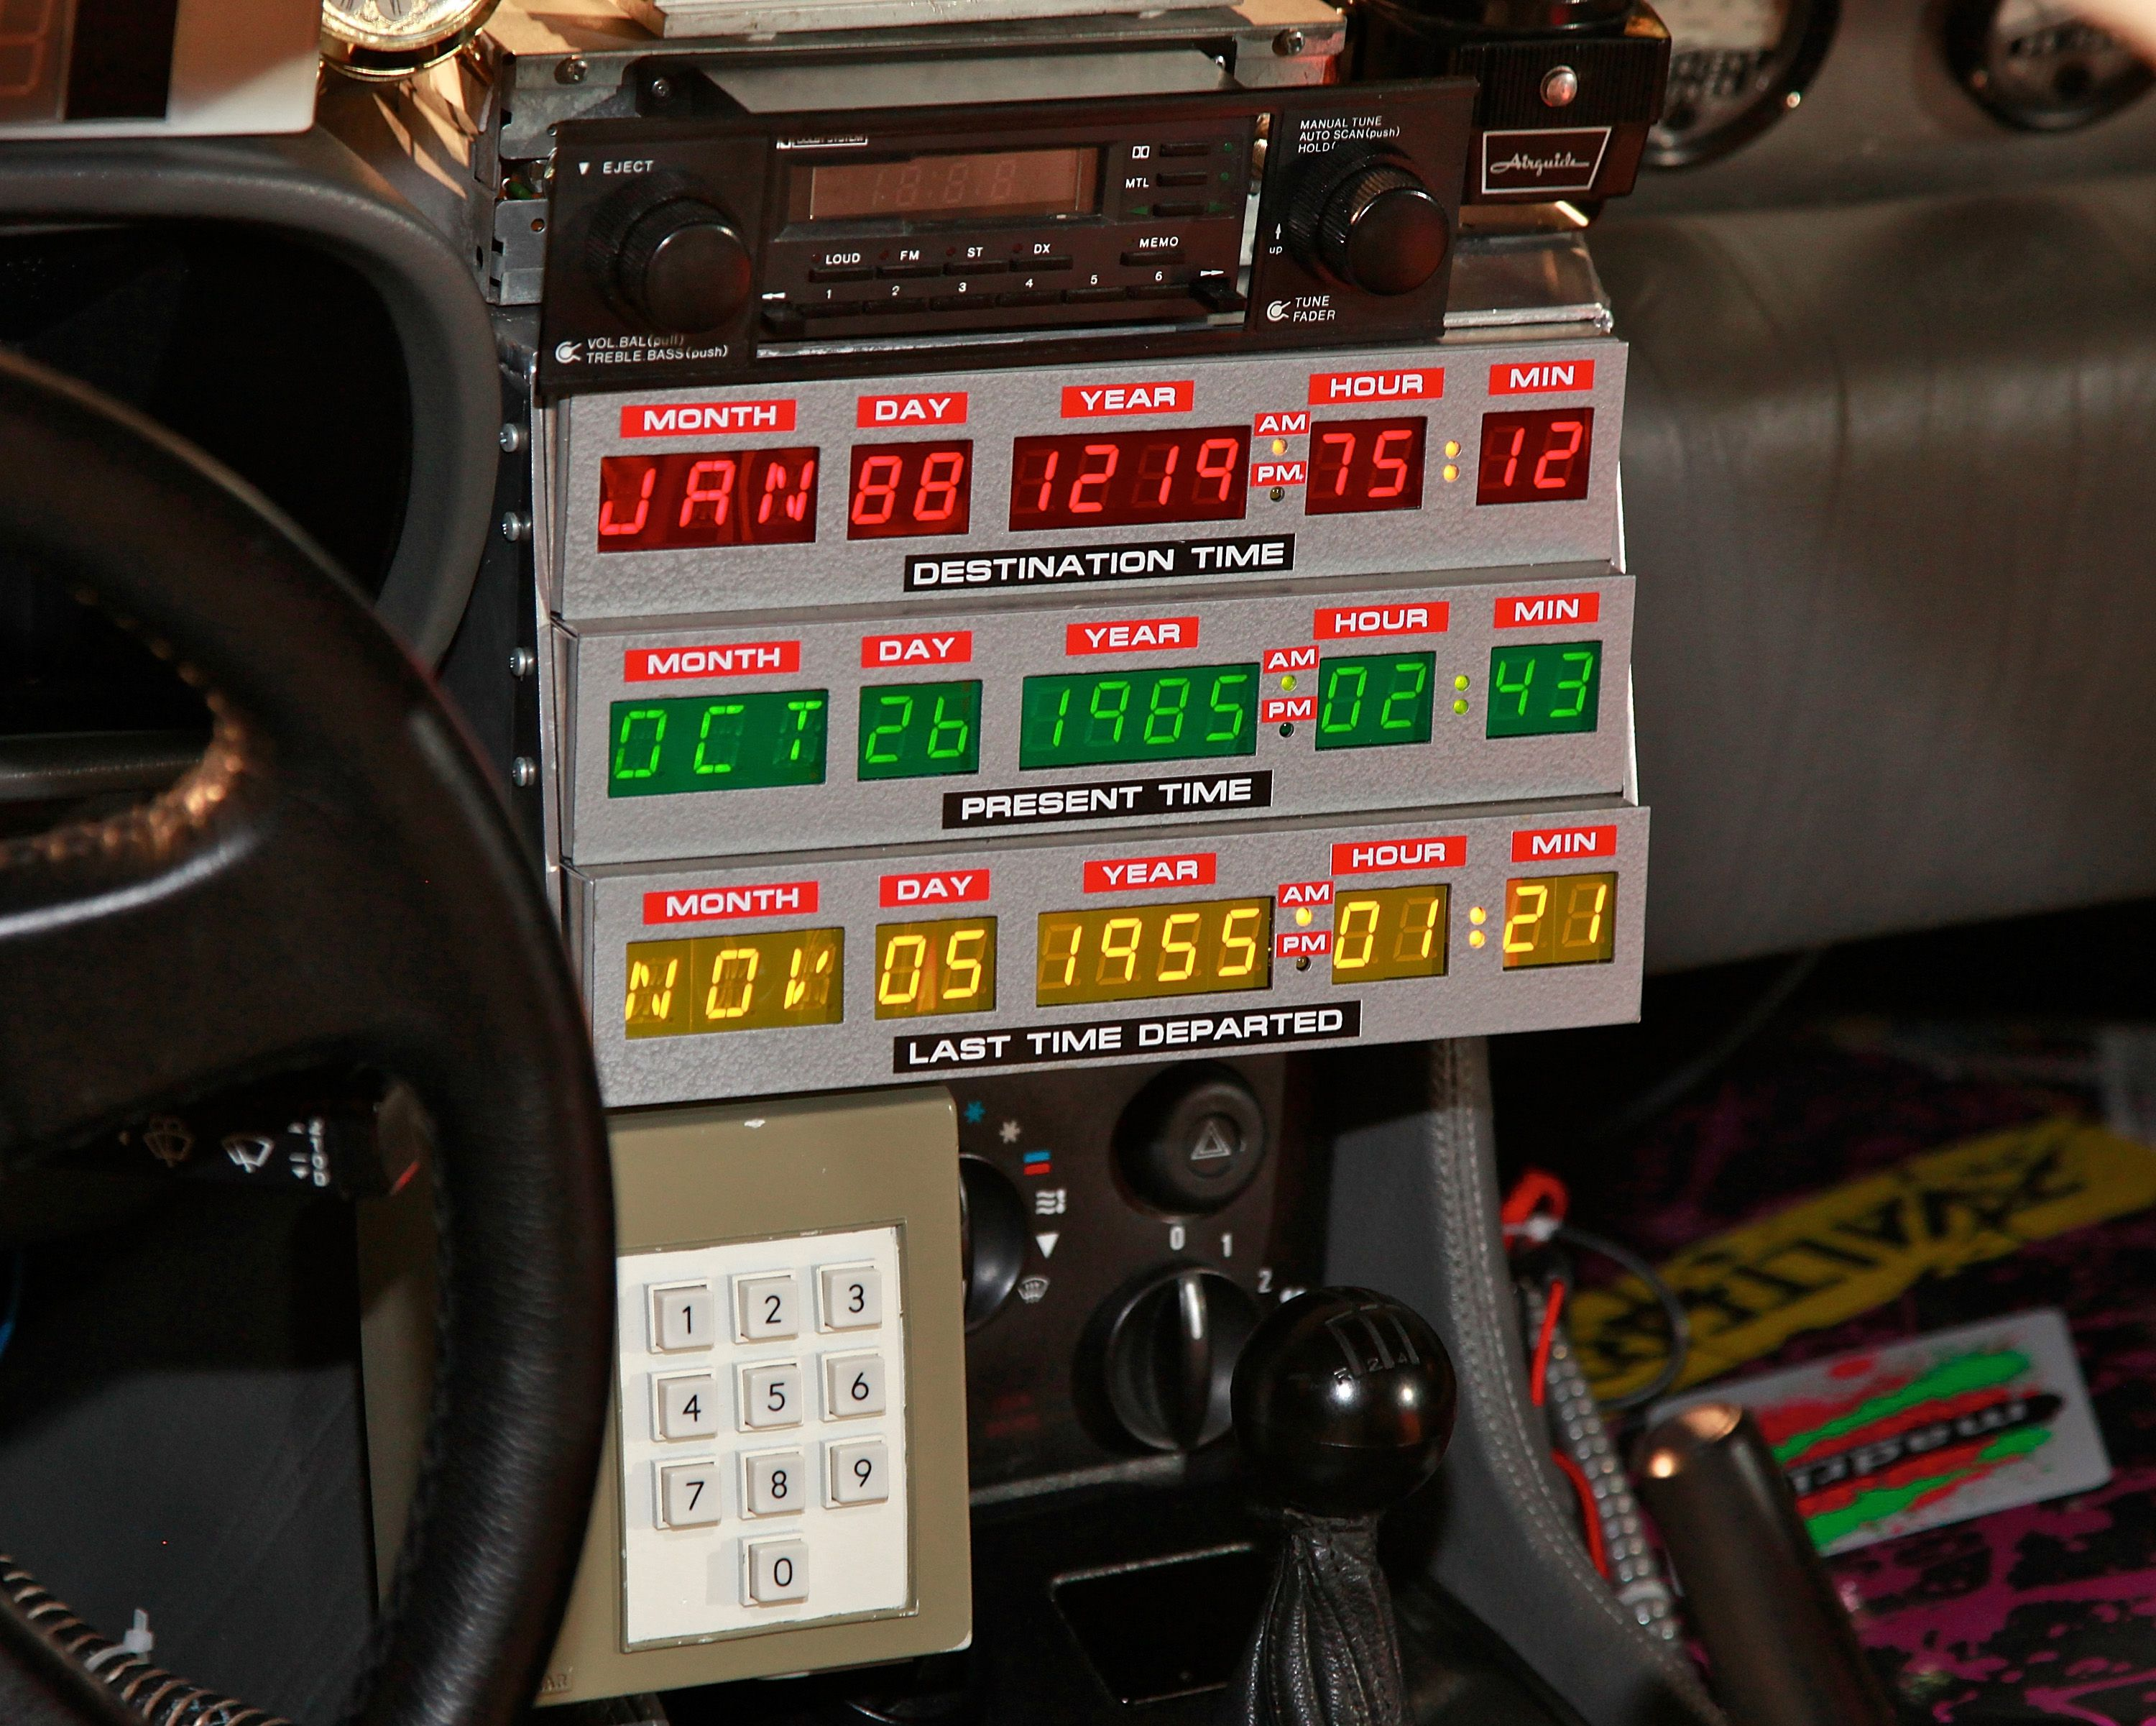 The control board inside the car in